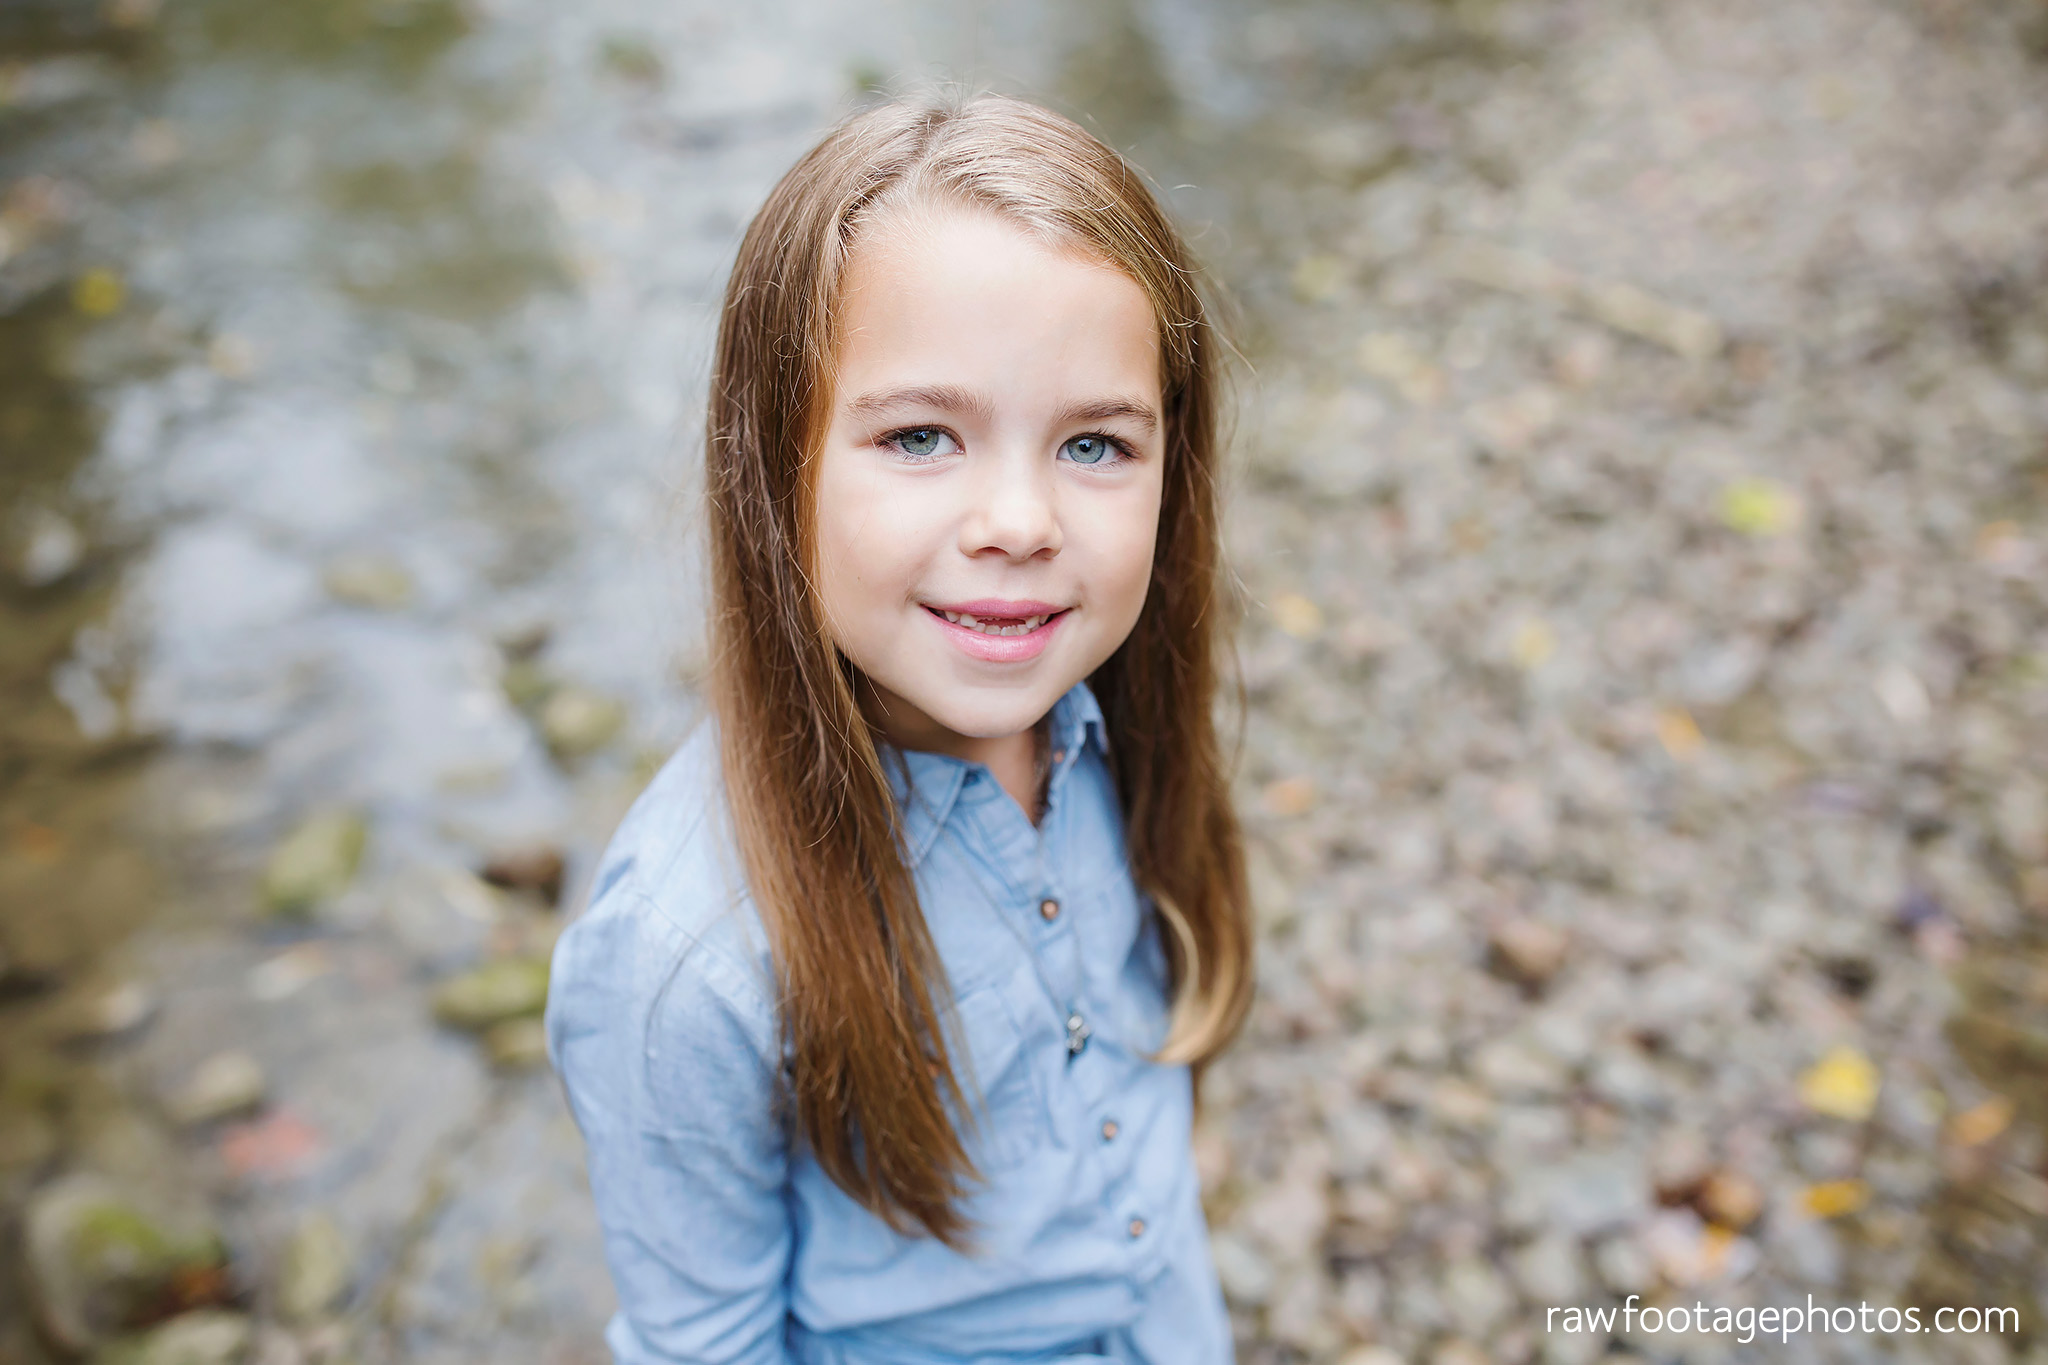 london_ontario_family_photographer-medway_creek-raw_footage_photography020.jpg